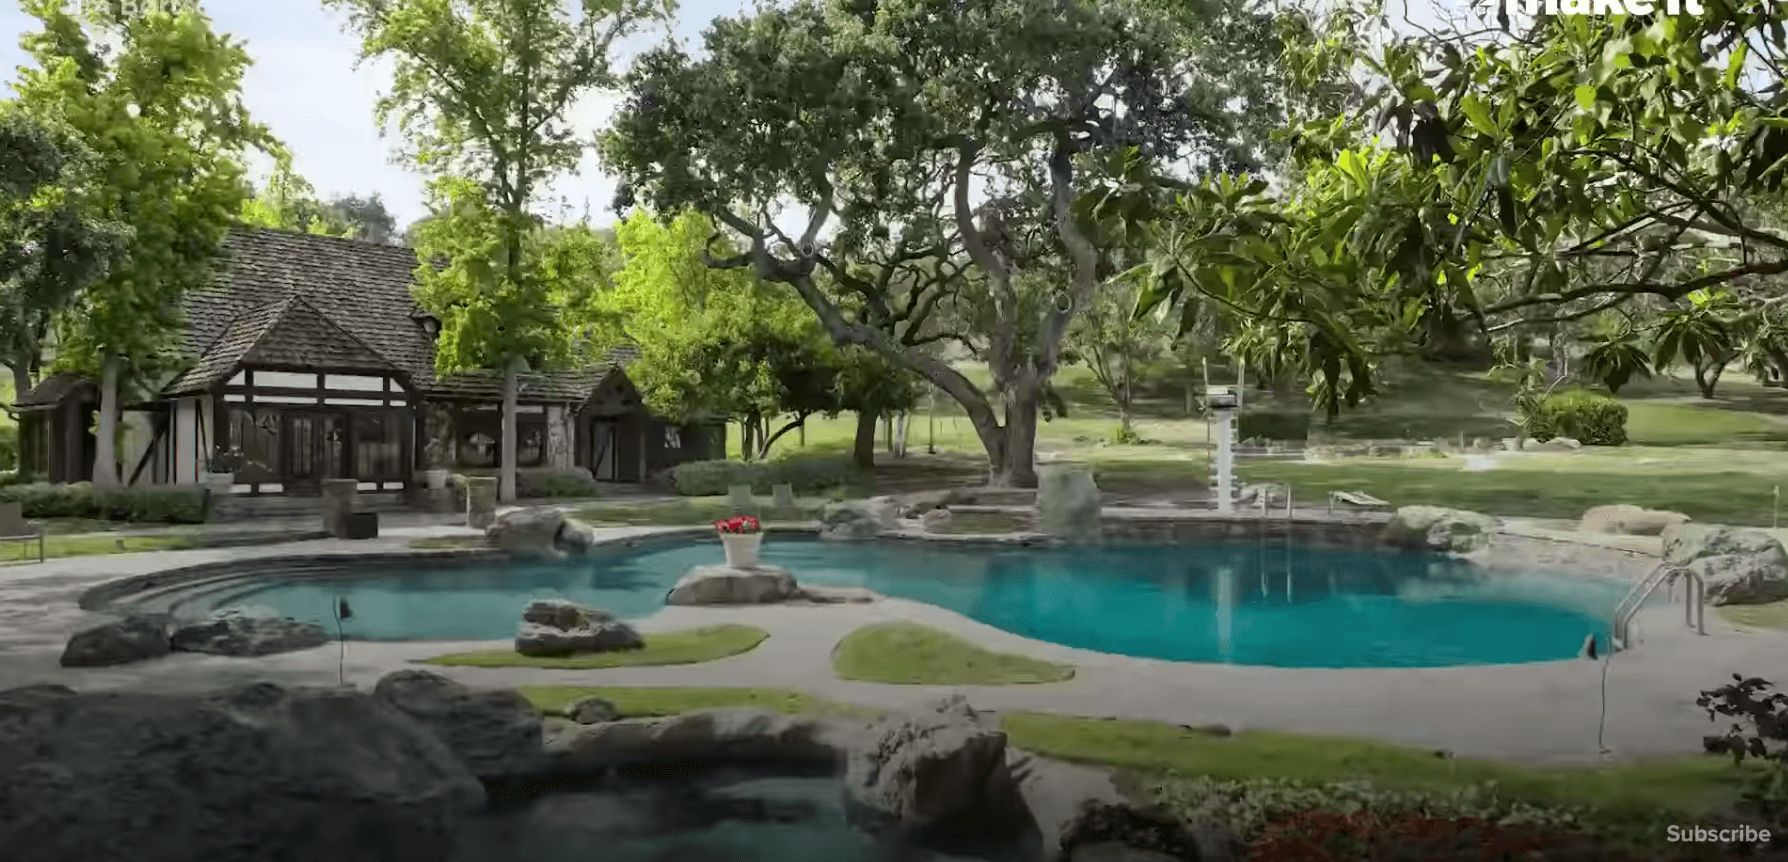 Image may contain: Neverland Ranch, Leaving Neverland, Lawn, Park, Swimming Pool, Forest, Woodland, Grove, Building, Garden, Tree, Grass, Land, Yard, Vegetation, Plant, Nature, Pool, Outdoors, Water